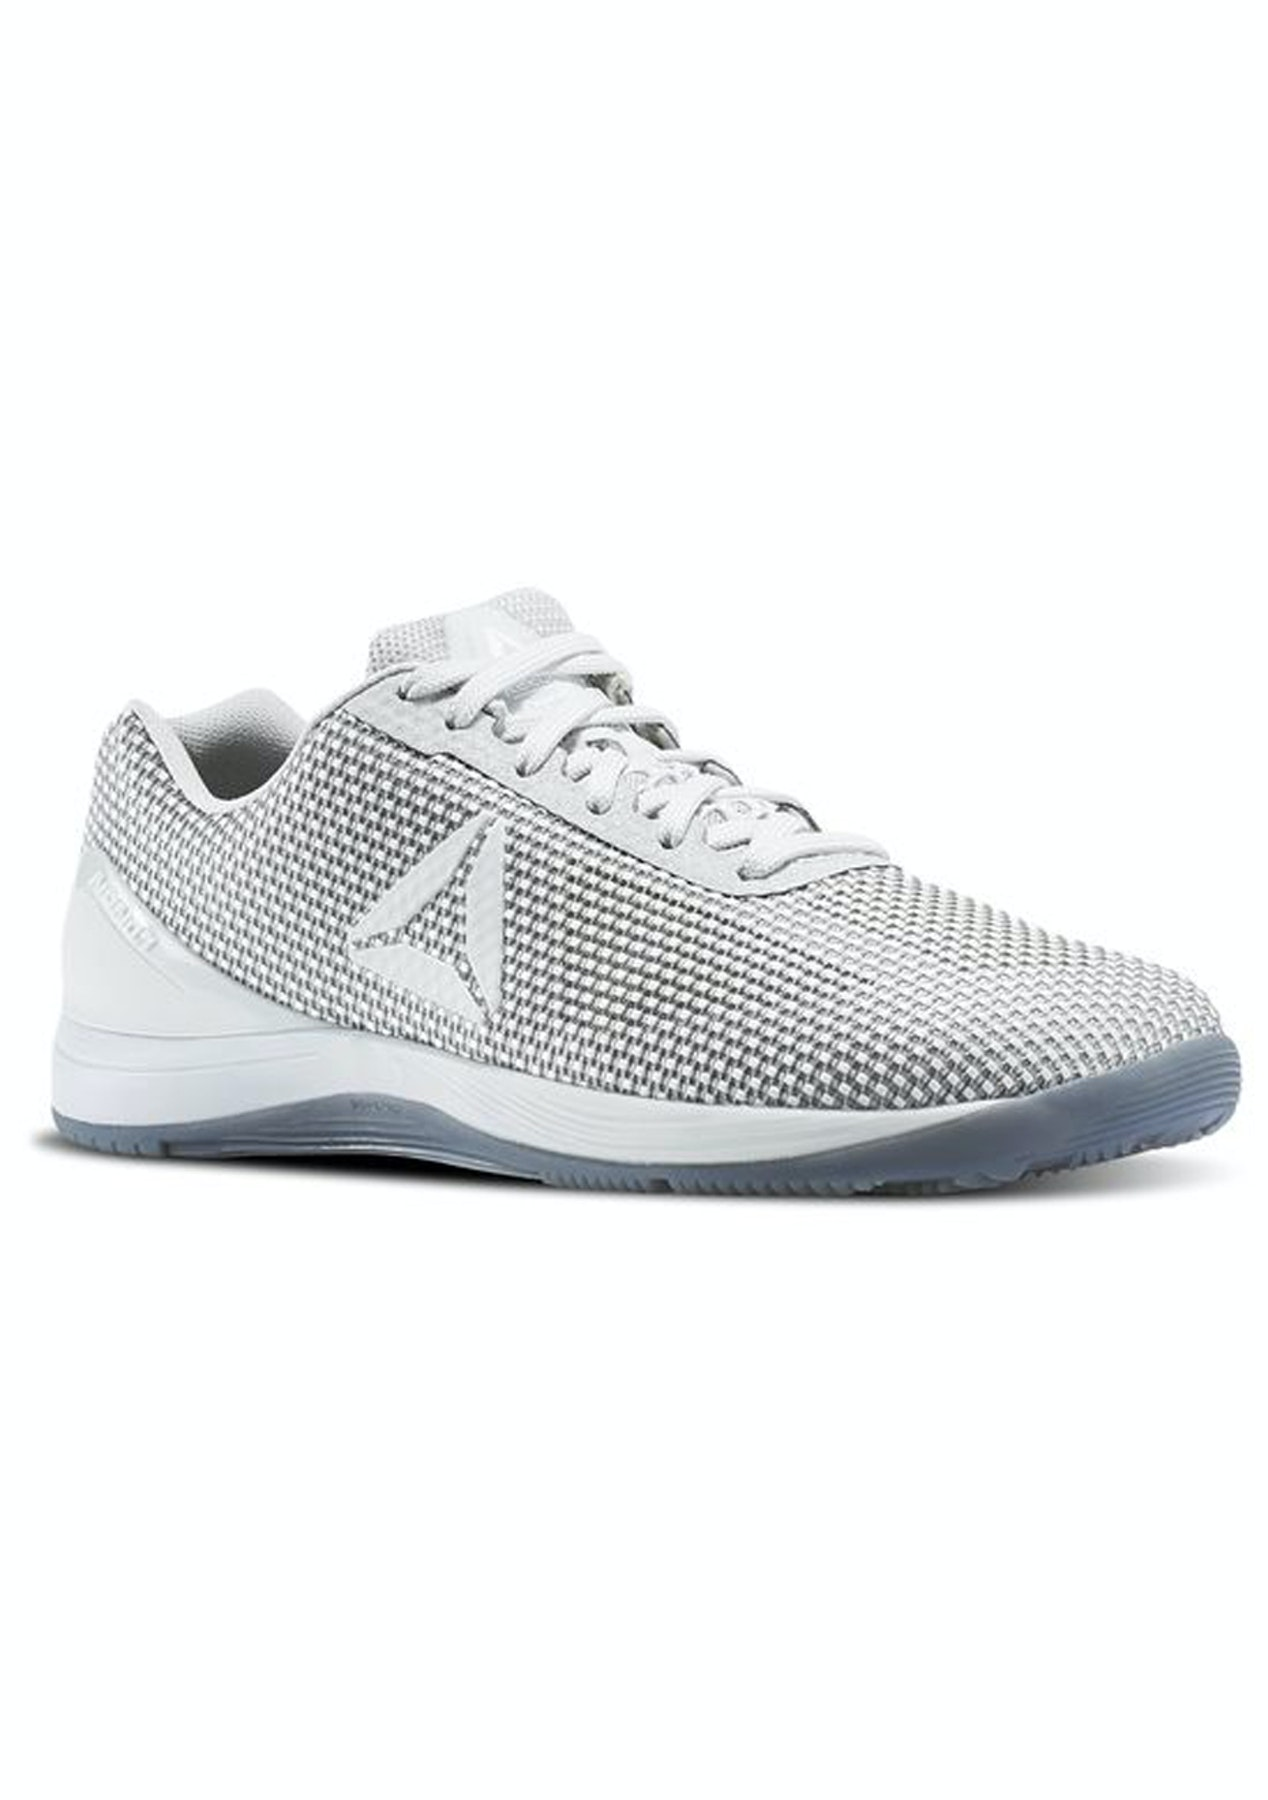 91625d708bb Reebok Mens - R Crossfit Nano 7.0 - Skull Grey   White   Black   Asteroid -  Big Brand Mens Shoes - Onceit